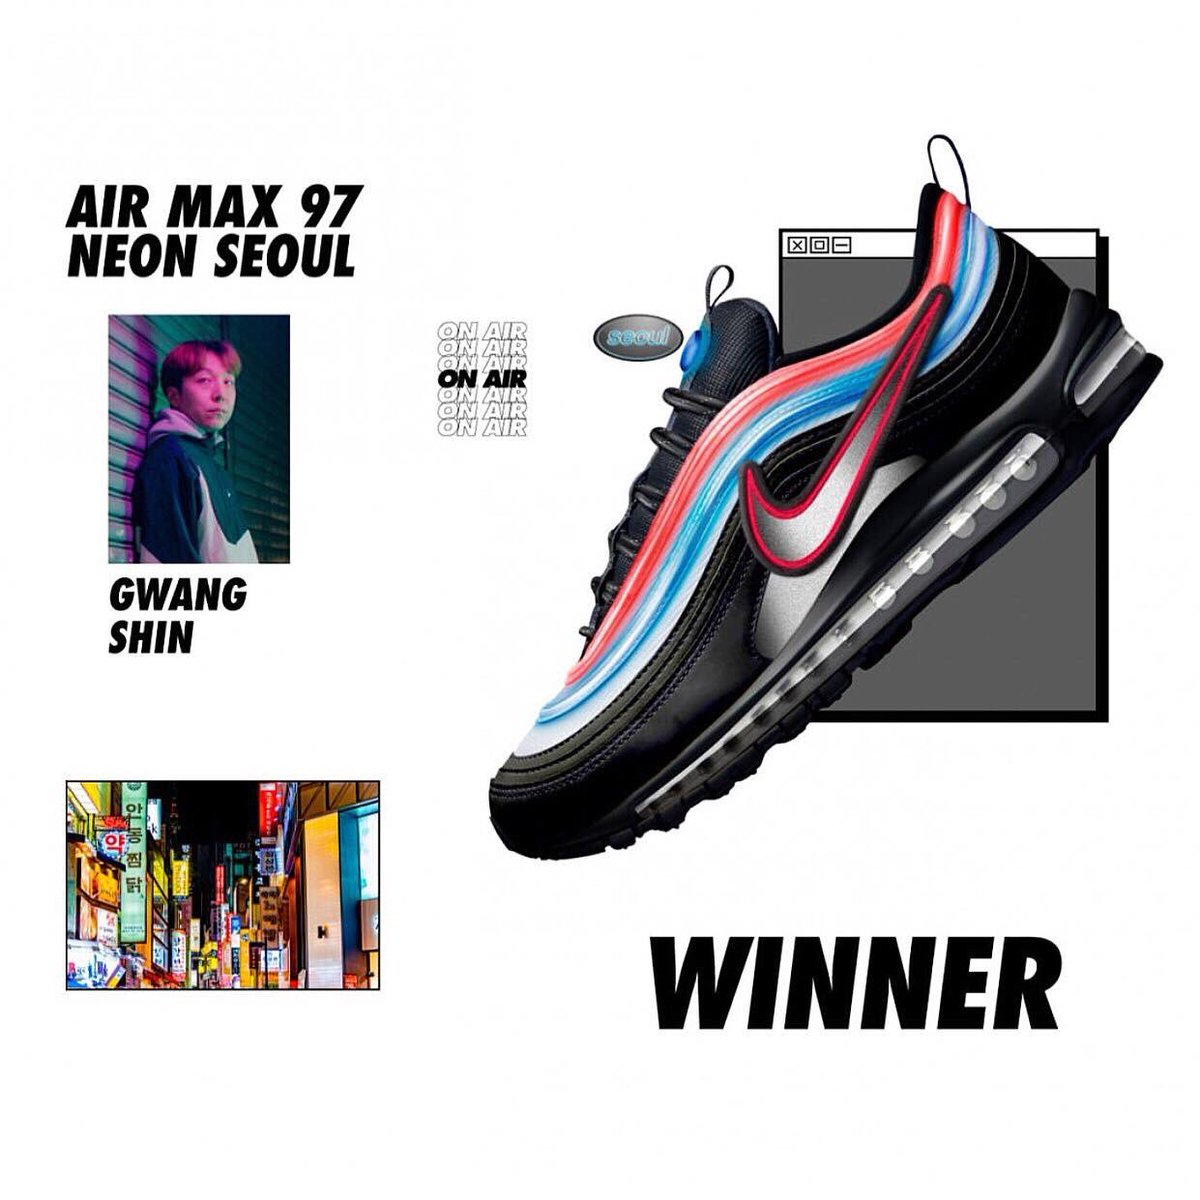 airmax97thailand tagged Tweets and Download Twitter MP4